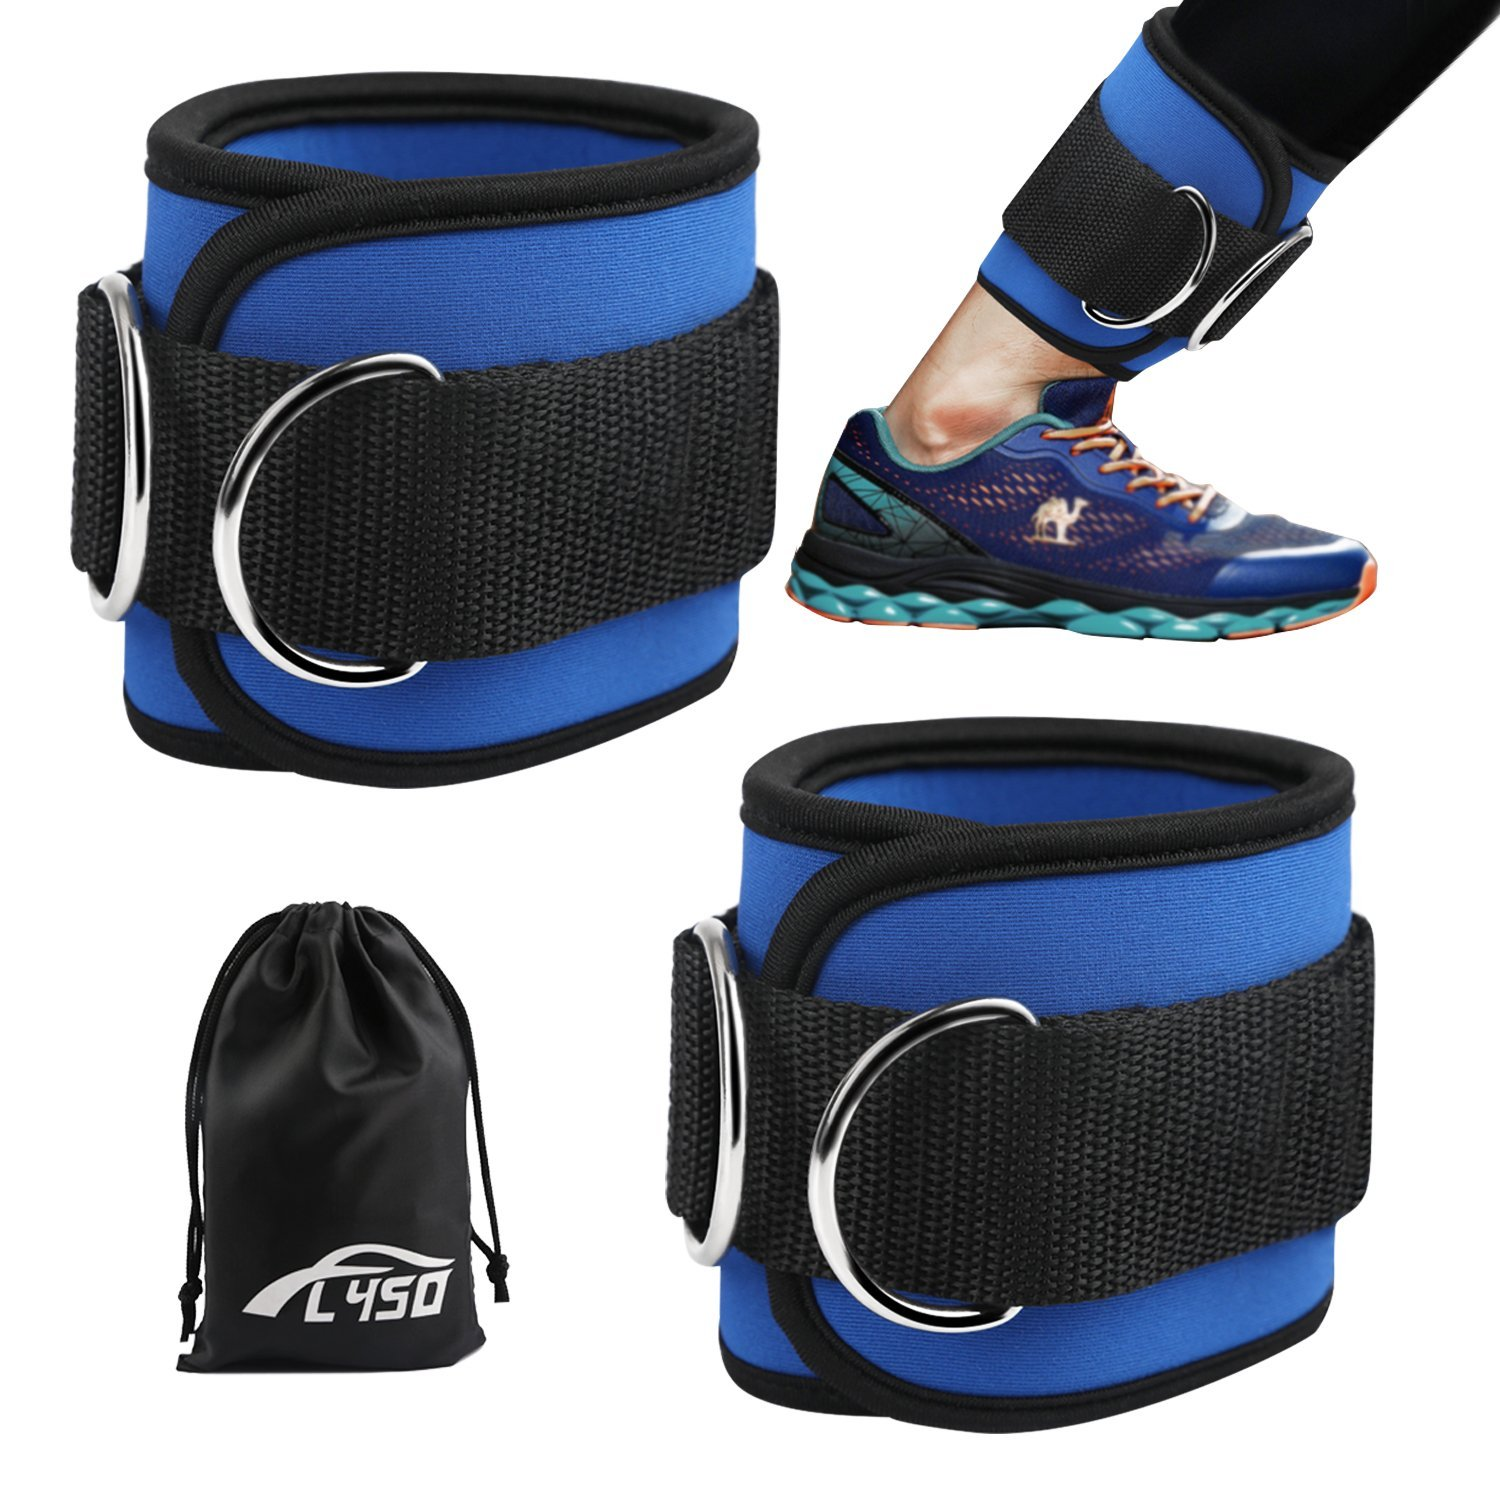 FLY5D Ankle Straps for Cable Machines with Resistance Band and Carry Bag double stitched, reinforced D-rings- Padded Ankle Strap for Weightlifting Leg Gym Workout, yoga, Ankle Cuffs(blue)